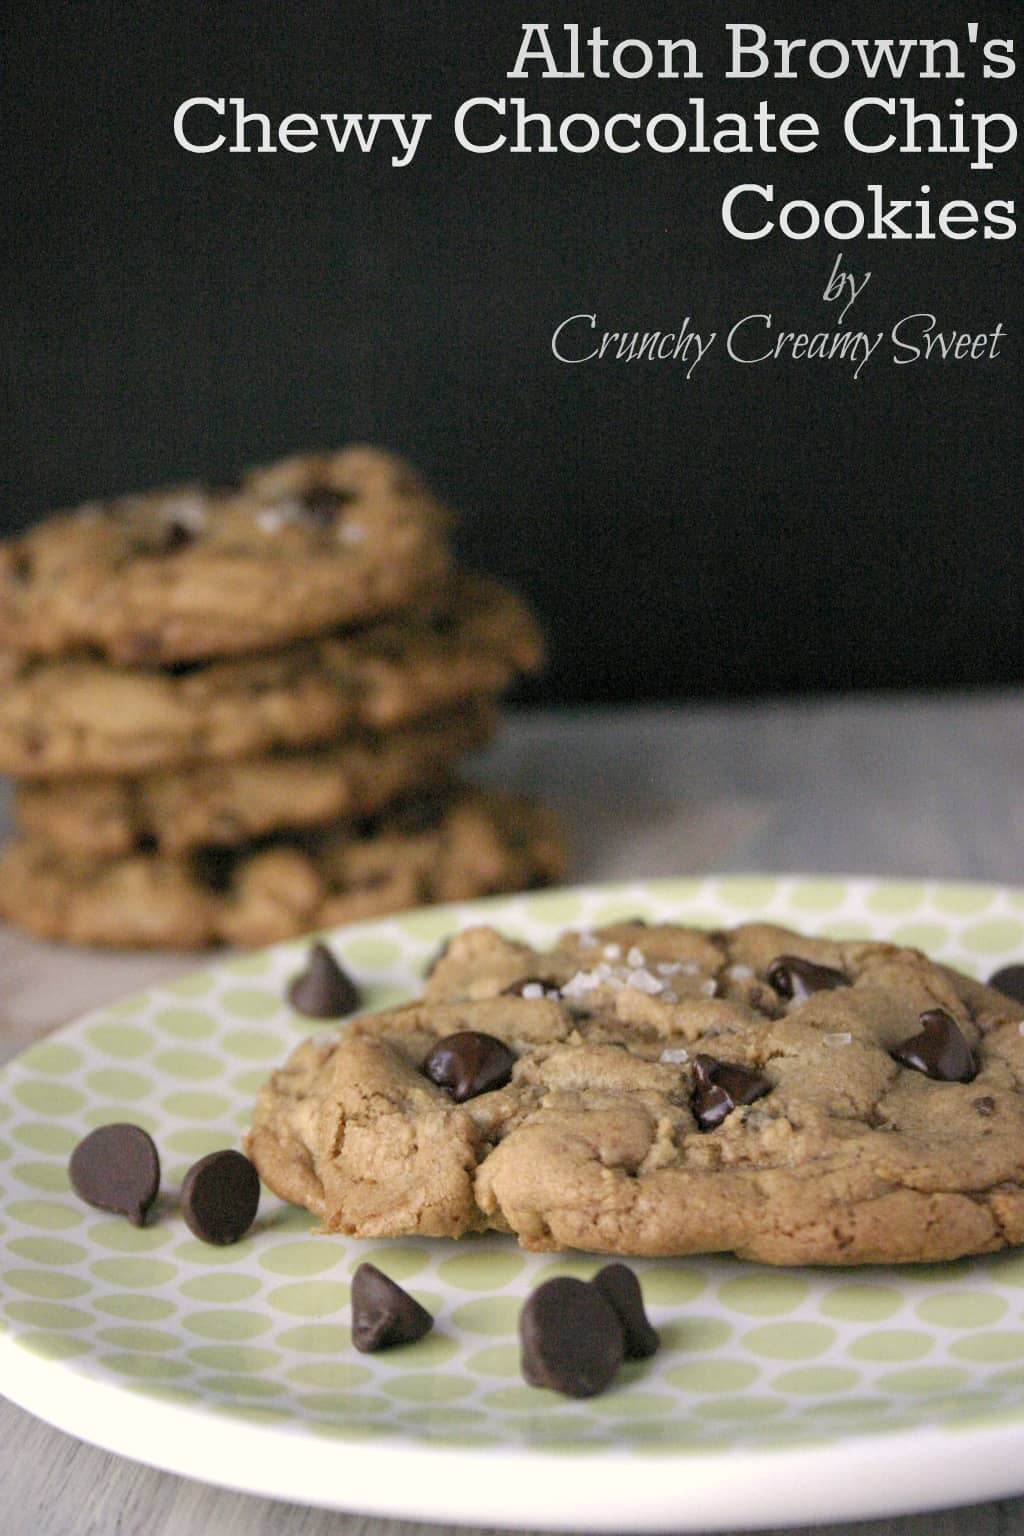 ccc alton brown 2 CCC Monday: Alton Browns Chewy Chocolate Chip Cookies